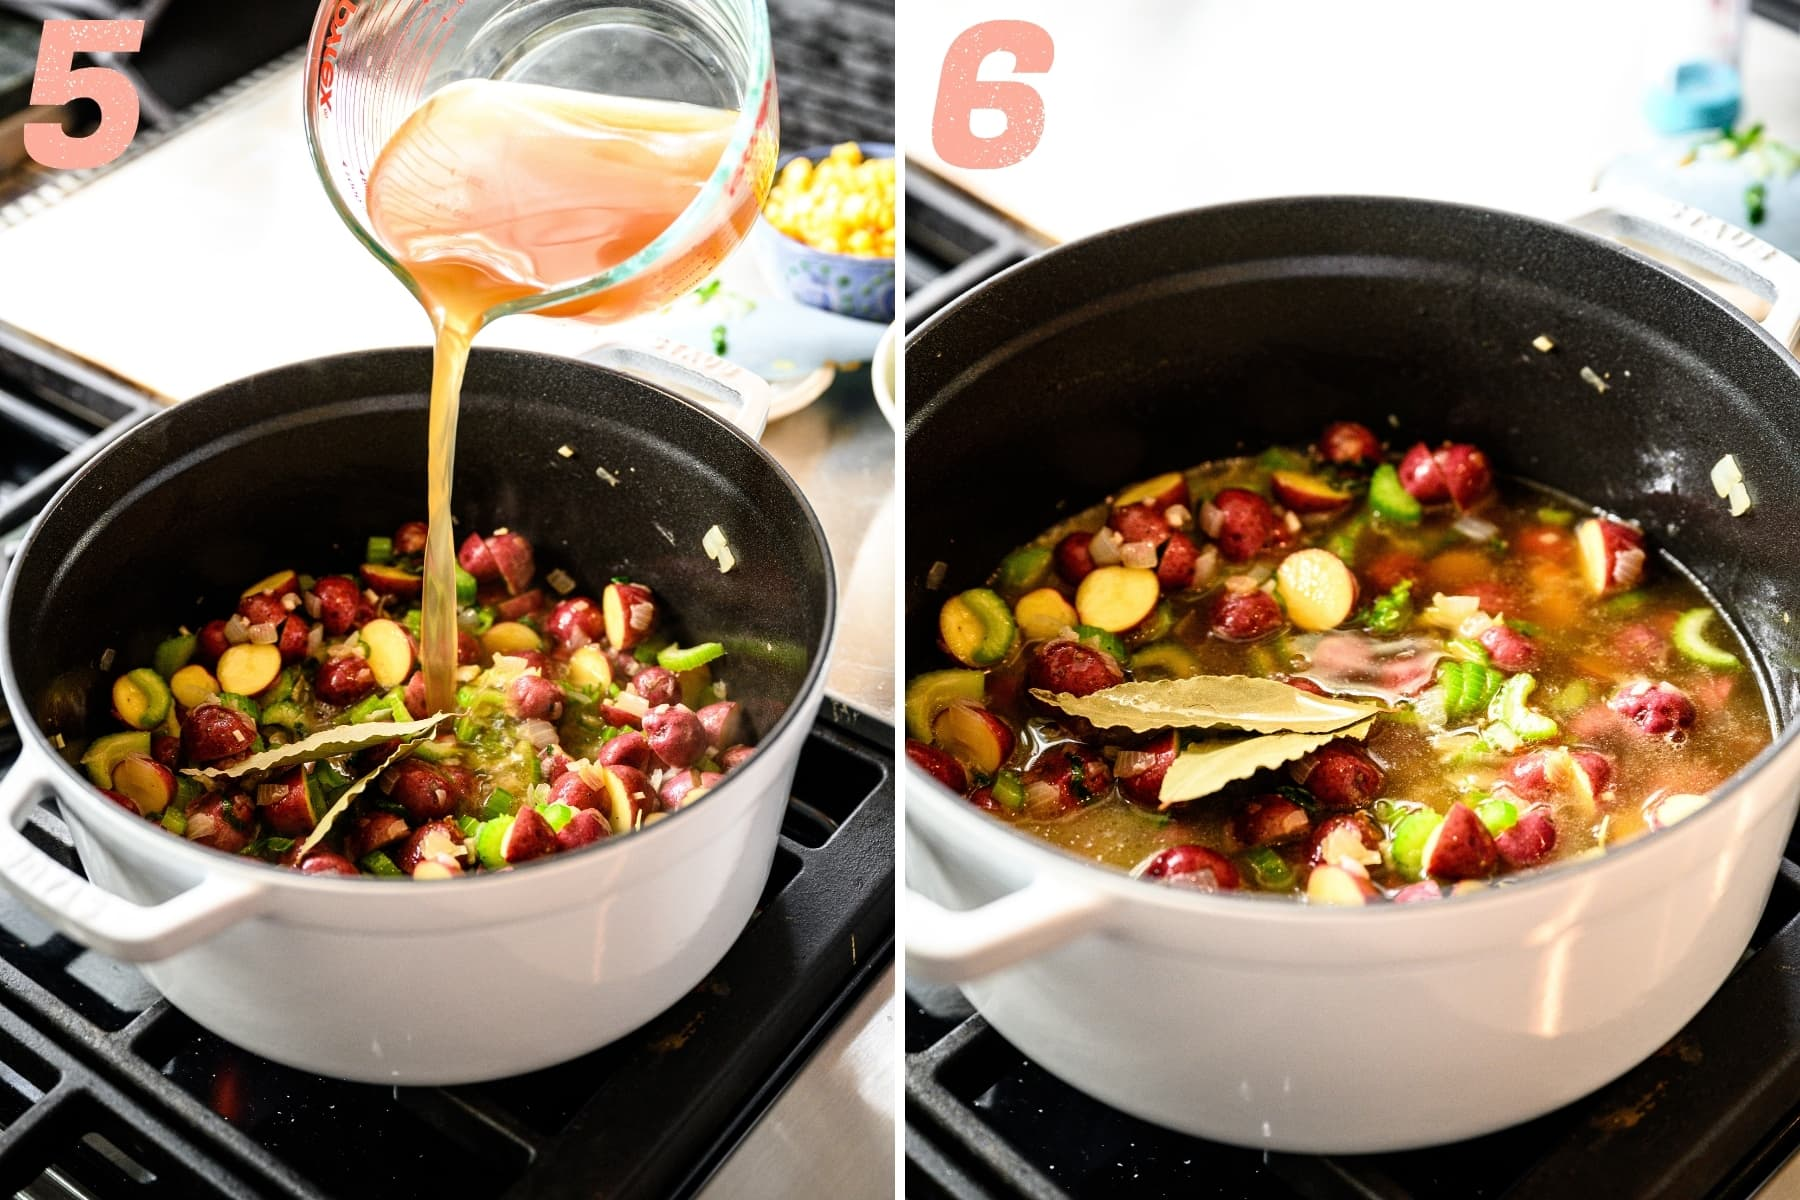 pouring vegetable broth and adding bay leaves to lima bean soup on stovetop.